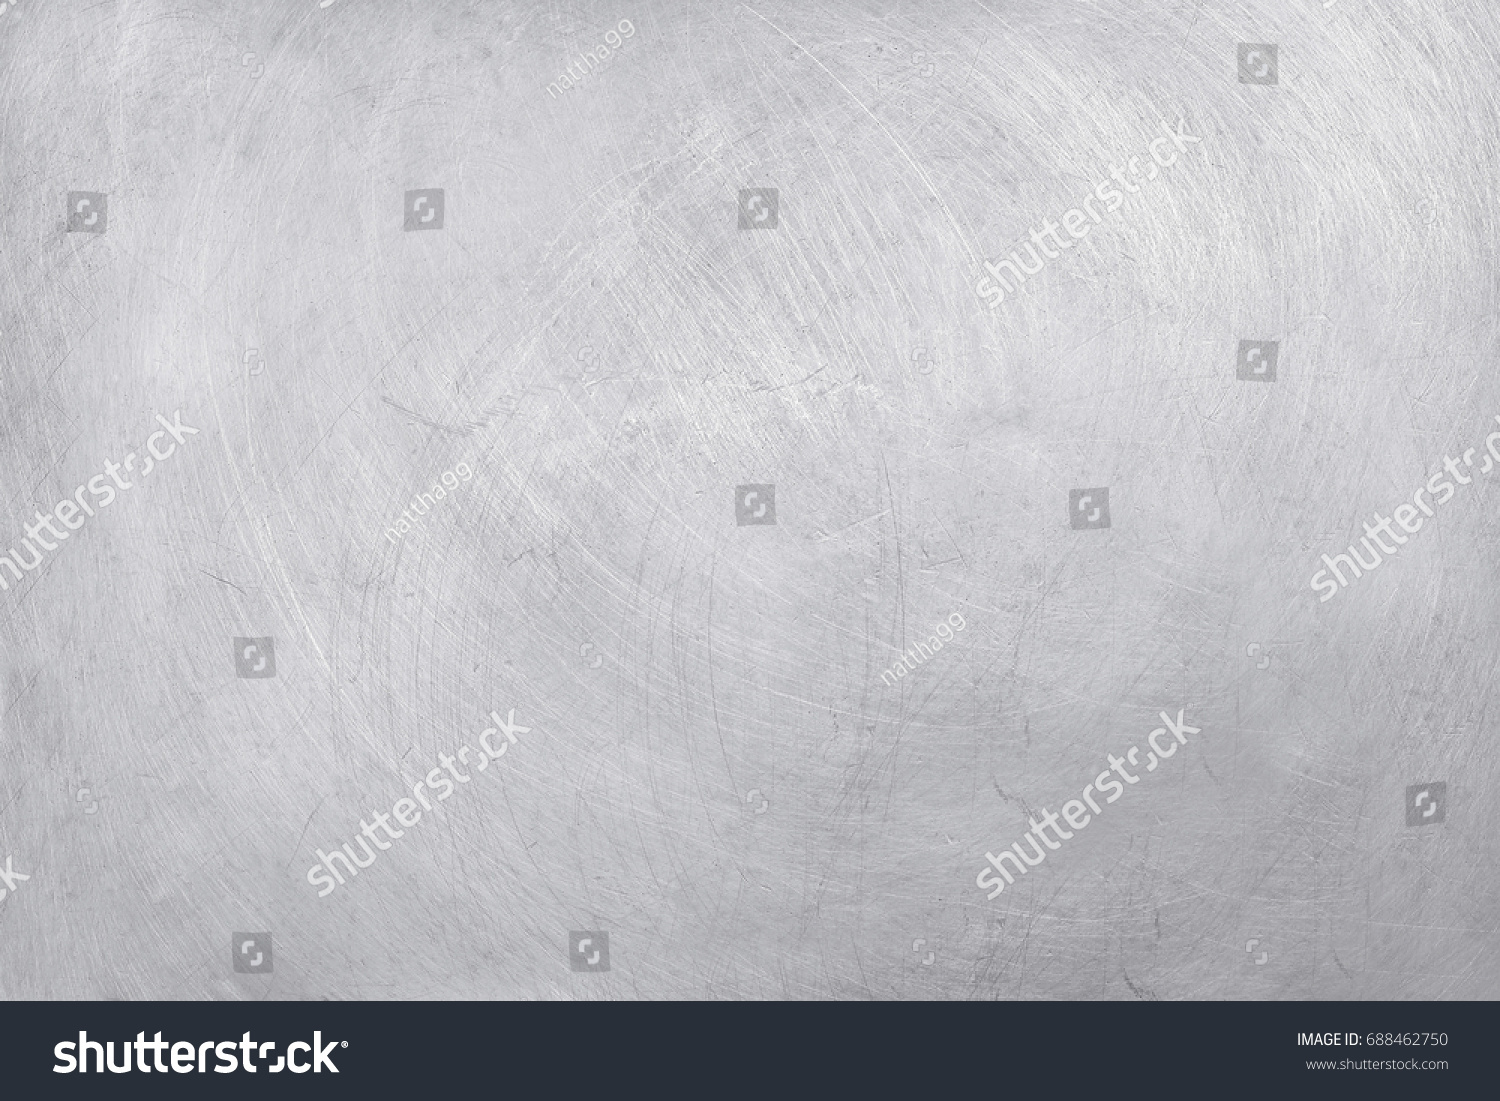 aluminium texture background, scratches on stainless steel. #688462750